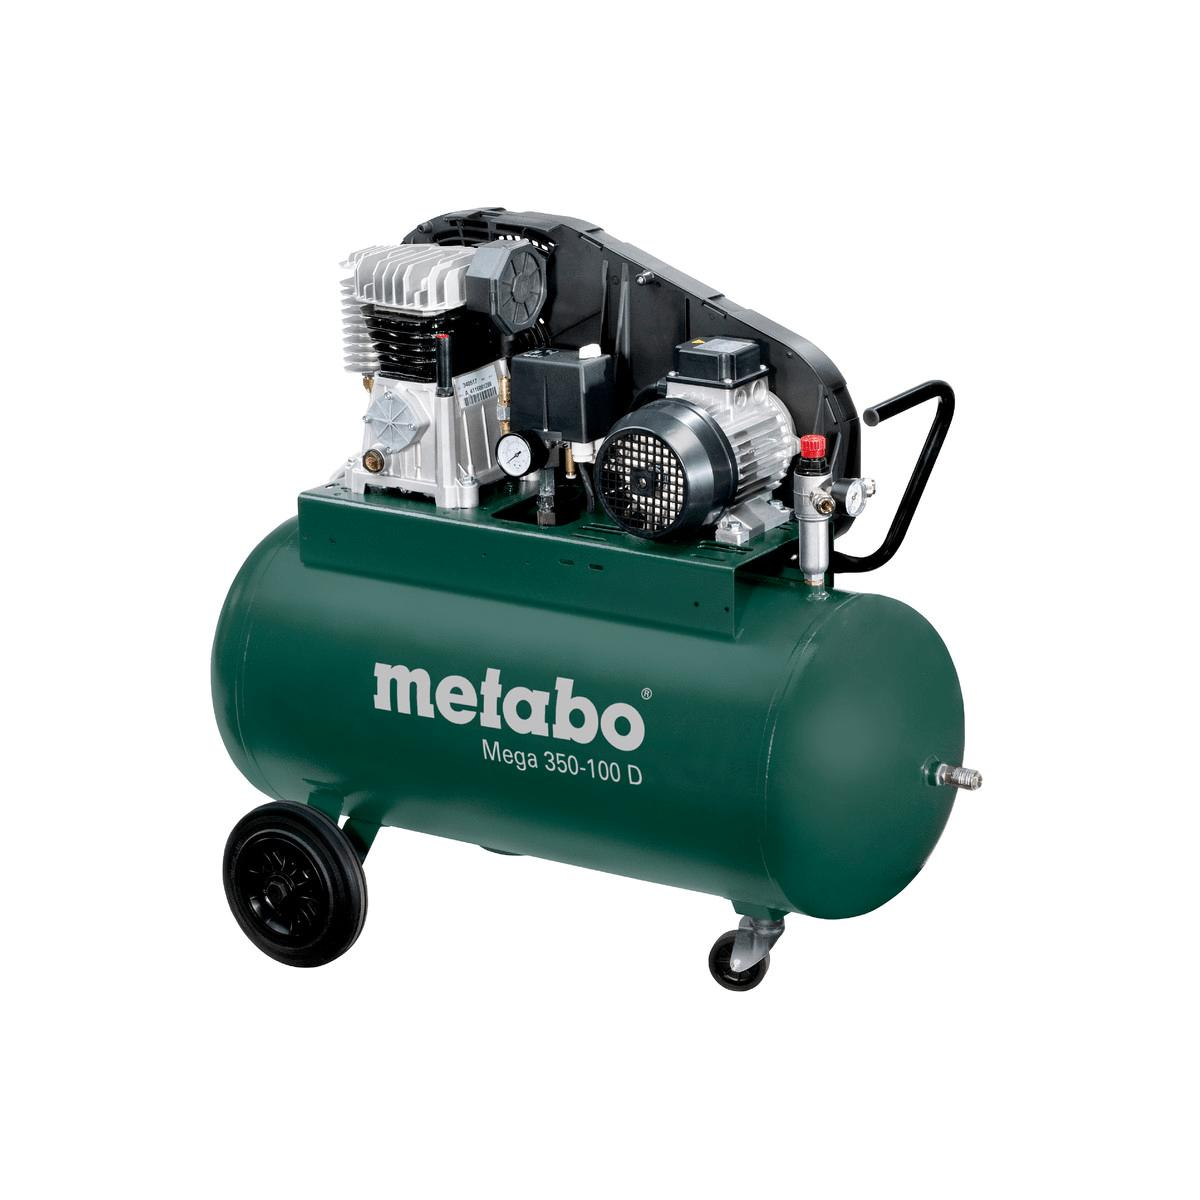 metabo kompressor mega 350 100 d 400v 90 liter 10 bar. Black Bedroom Furniture Sets. Home Design Ideas